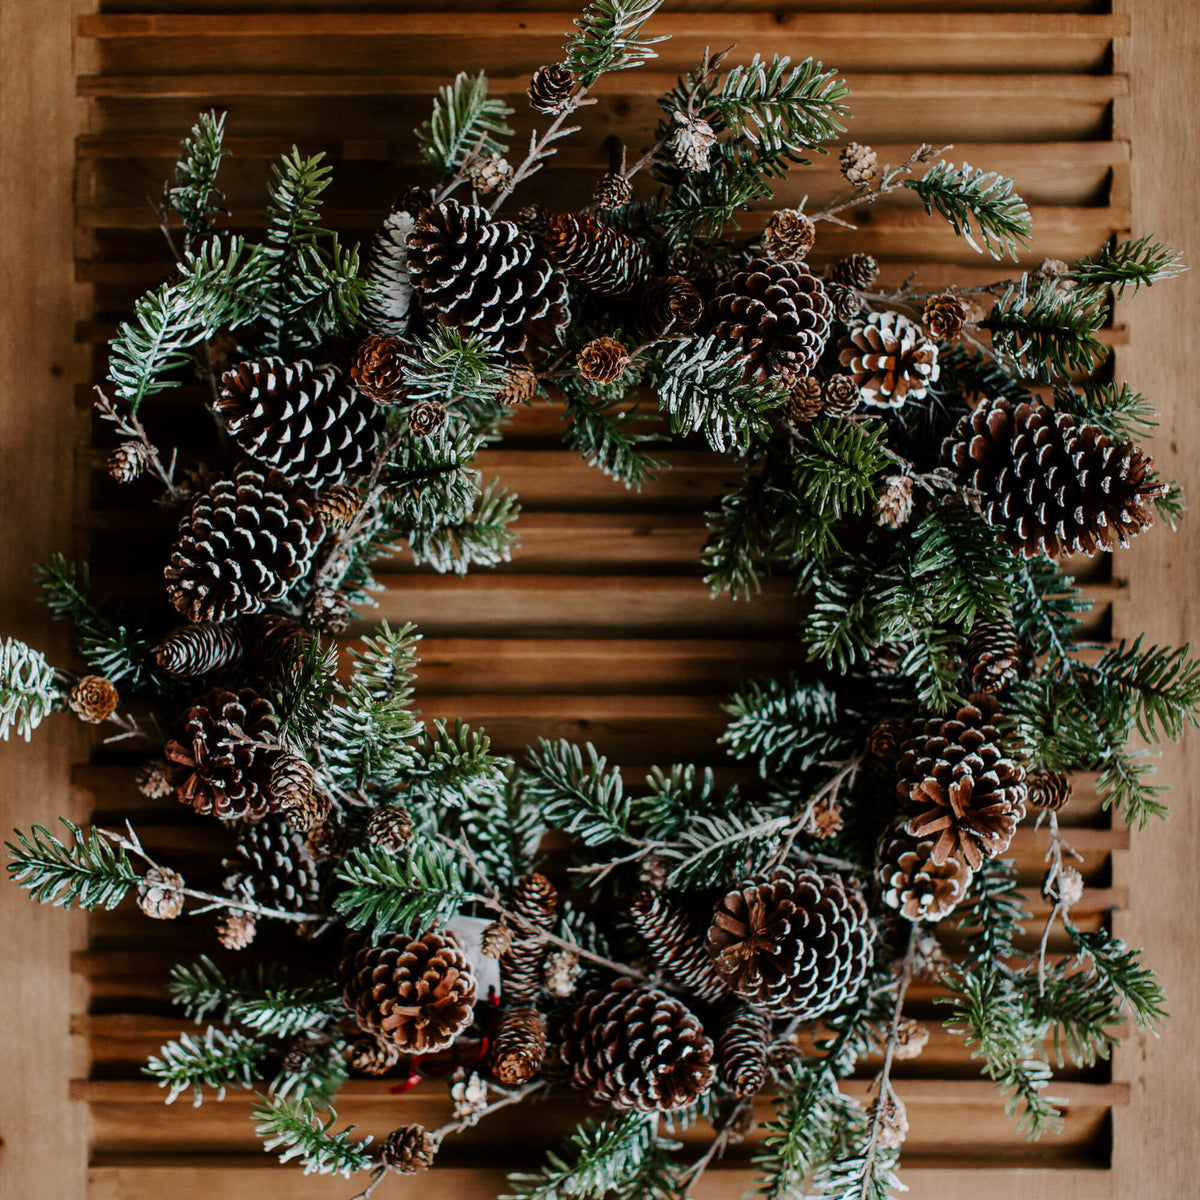 A full and lush 28 inch diameter, natural-looking faux spruce wreath loaded with pinecones of different sizes all dusted in faux snow perfect for holiday decorating  Edit alt text